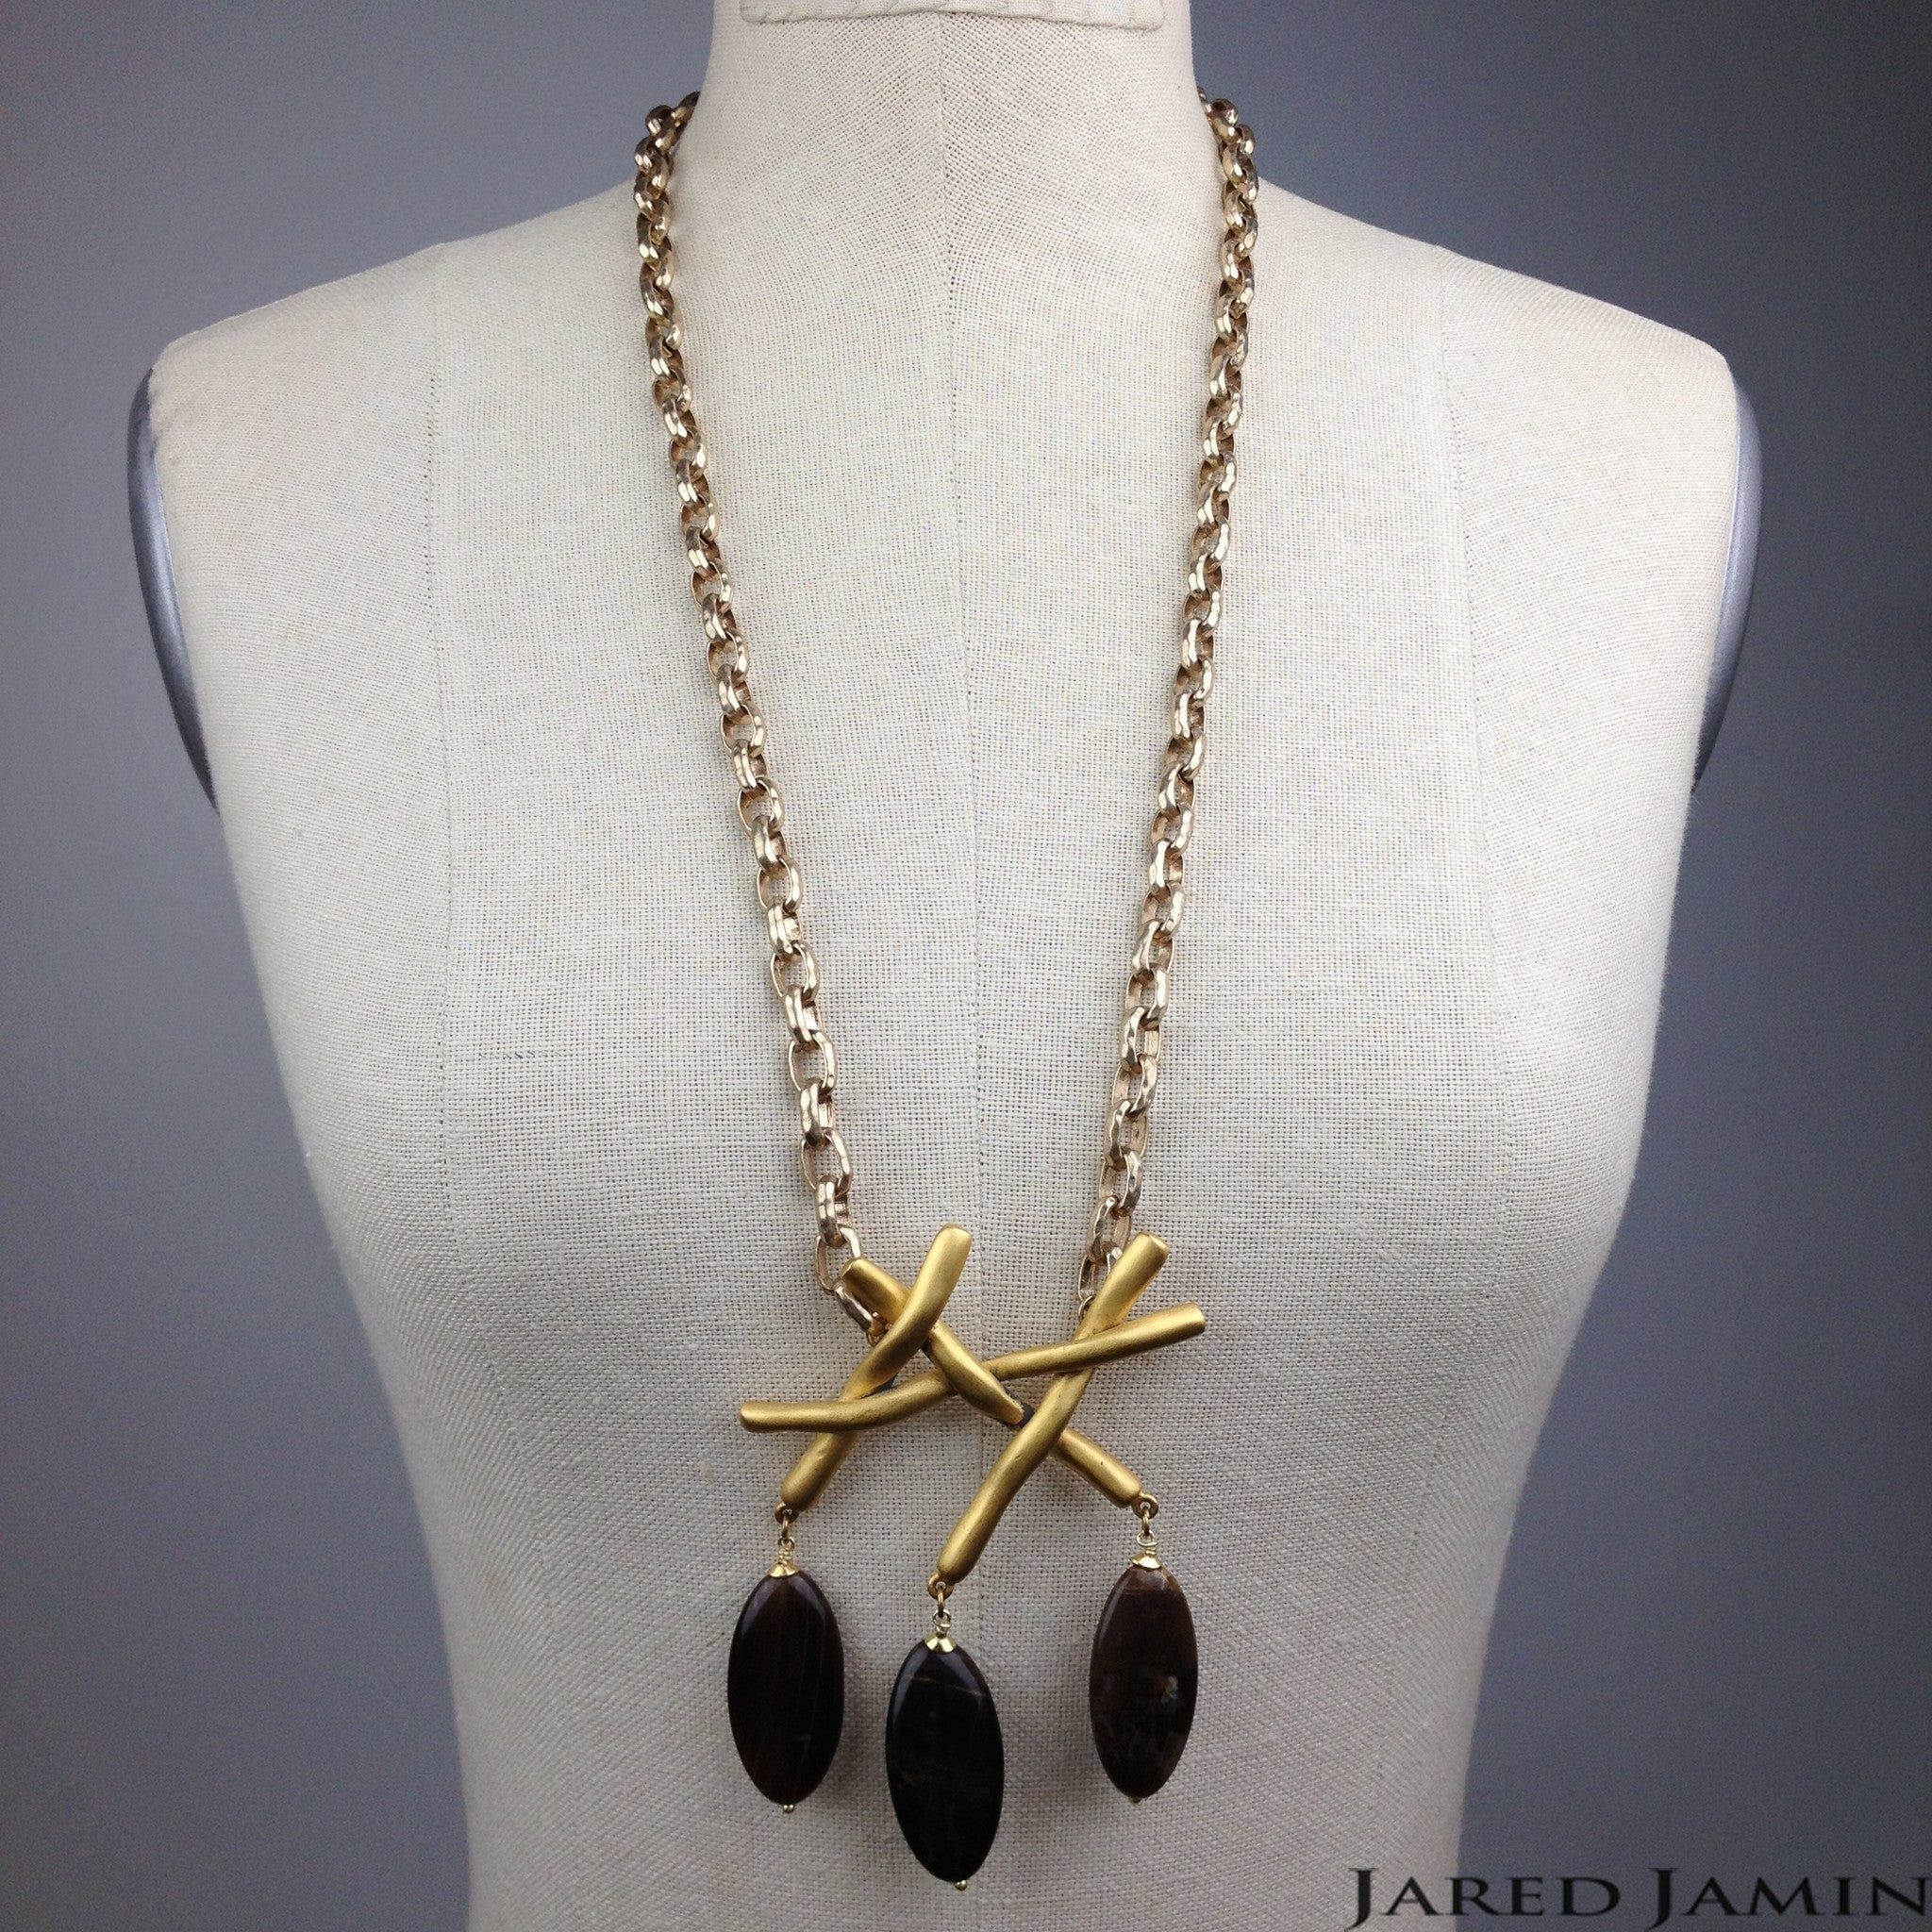 Coral Gable Necklace JARED JAMIN